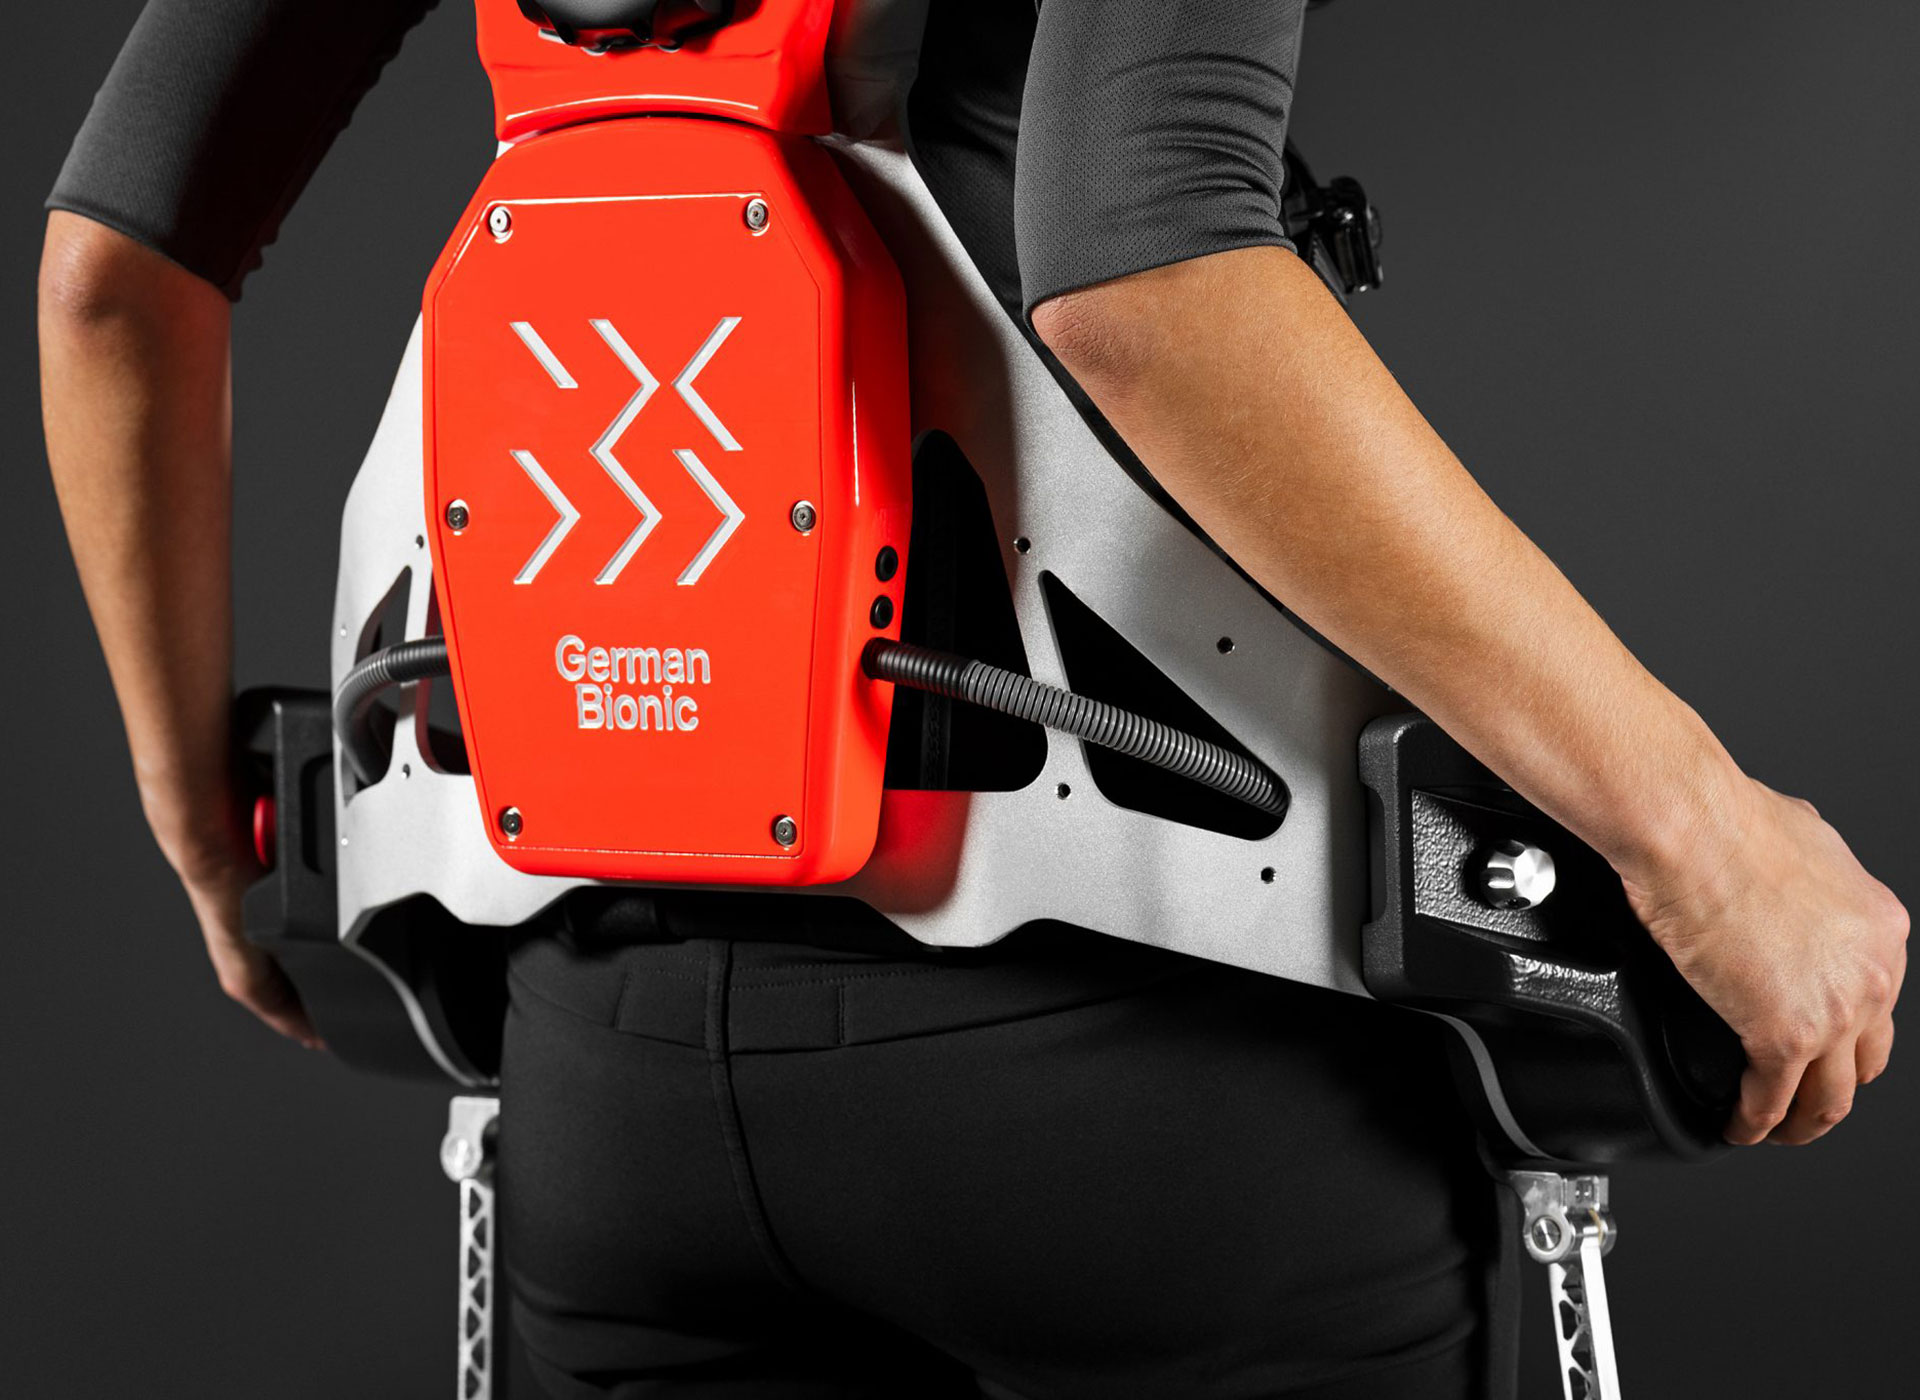 Intelligent exoskeleton gets IoT connectivity to join the smart factory